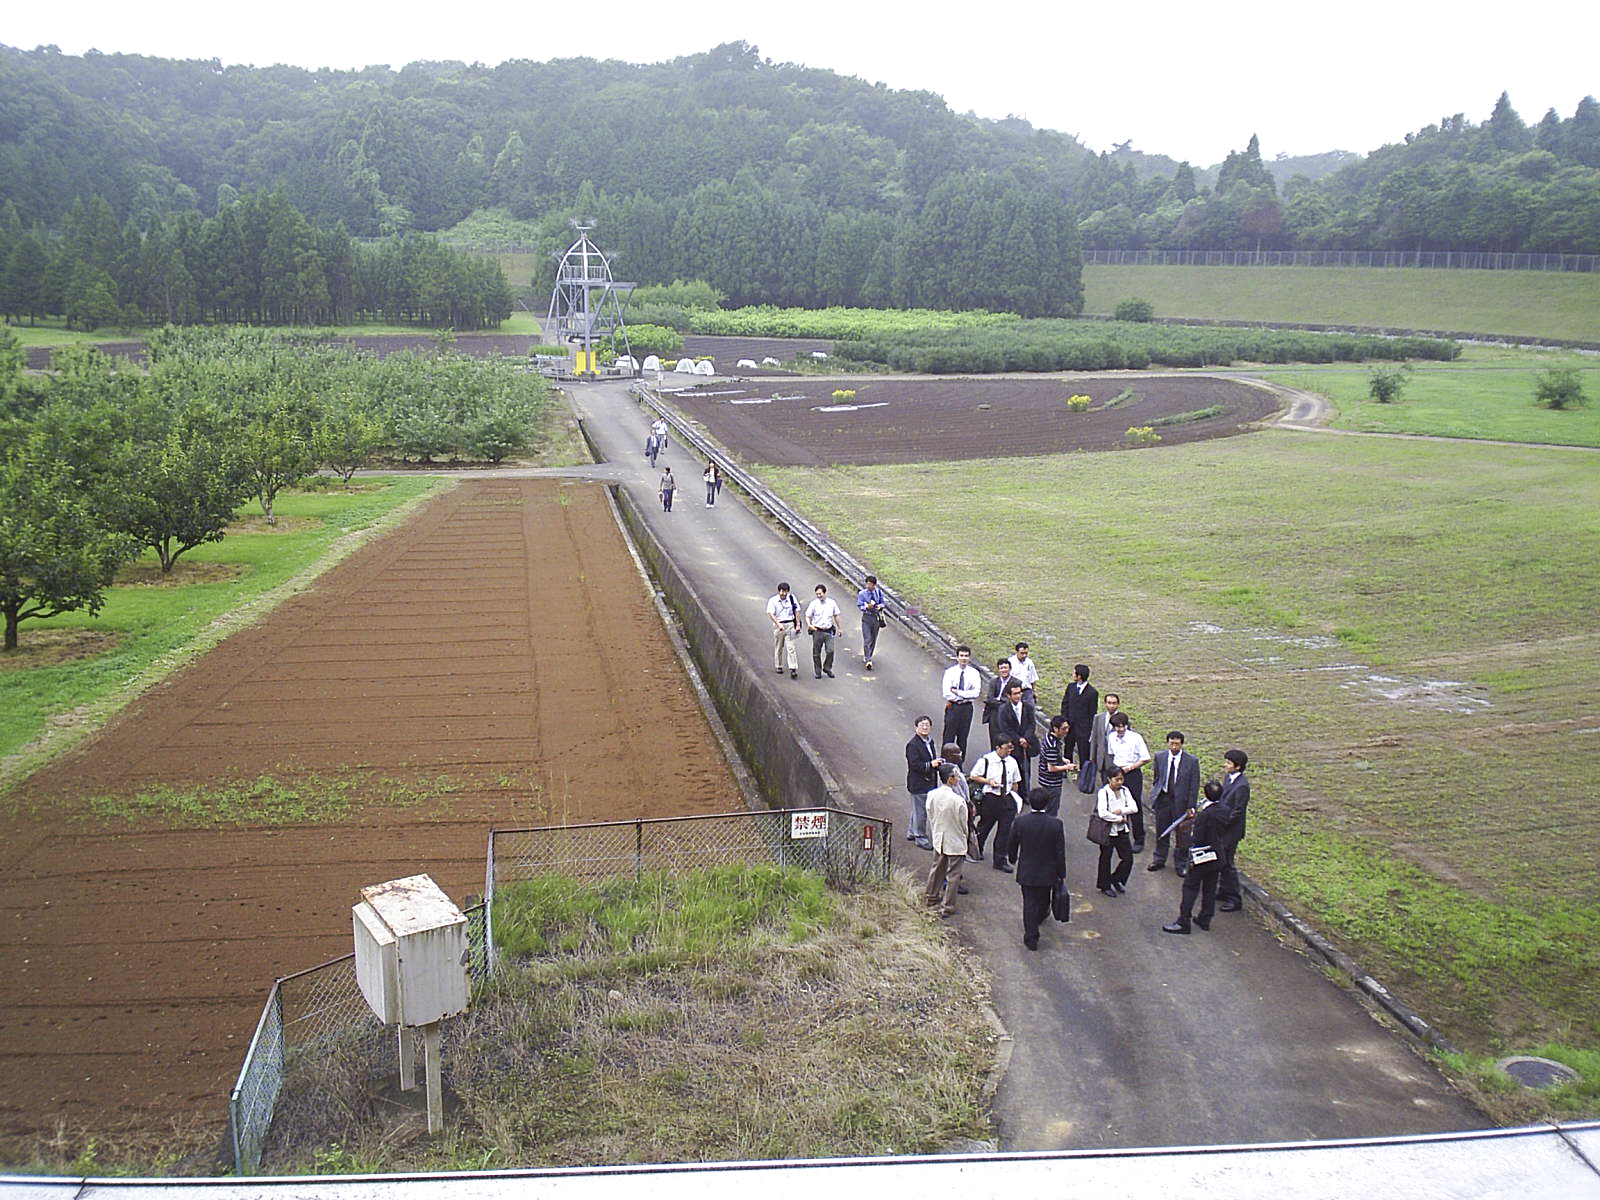 View toward the centre of the atomic garden field at the Institute of Radiation Breeding (IRB) in Hitachiohmiya, Japan, 2016. Photographs by Govinda Rizal